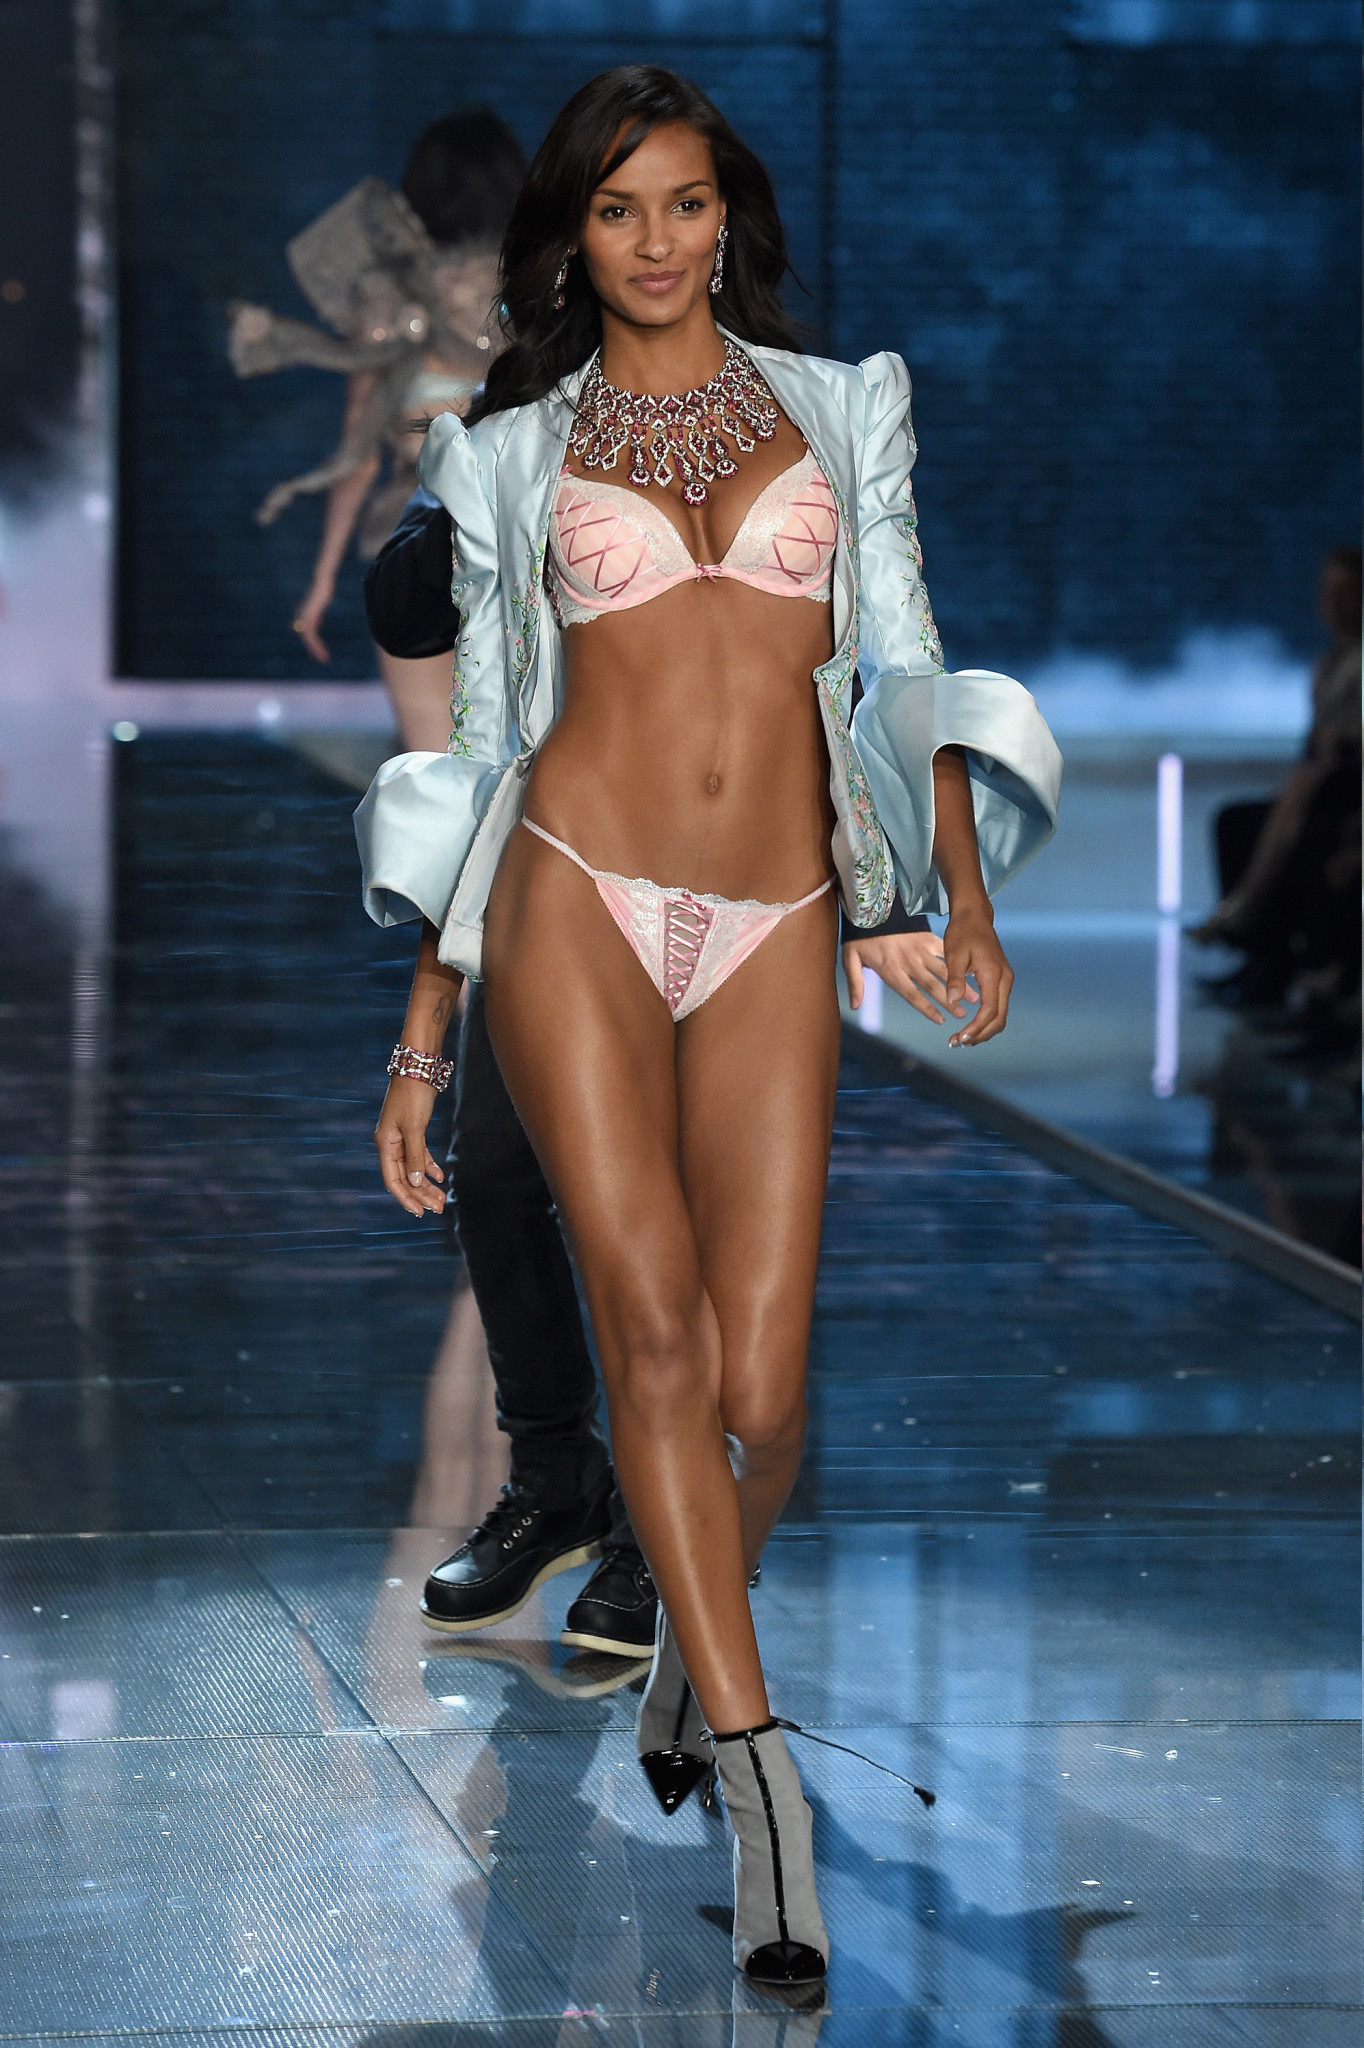 NEW YORK, NY - NOVEMBER 10: Model Gracie Carvalho from Brazil walks the runway during the 2015 Victoria's Secret Fashion Show at Lexington Avenue Armory on November 10, 2015 in New York City.